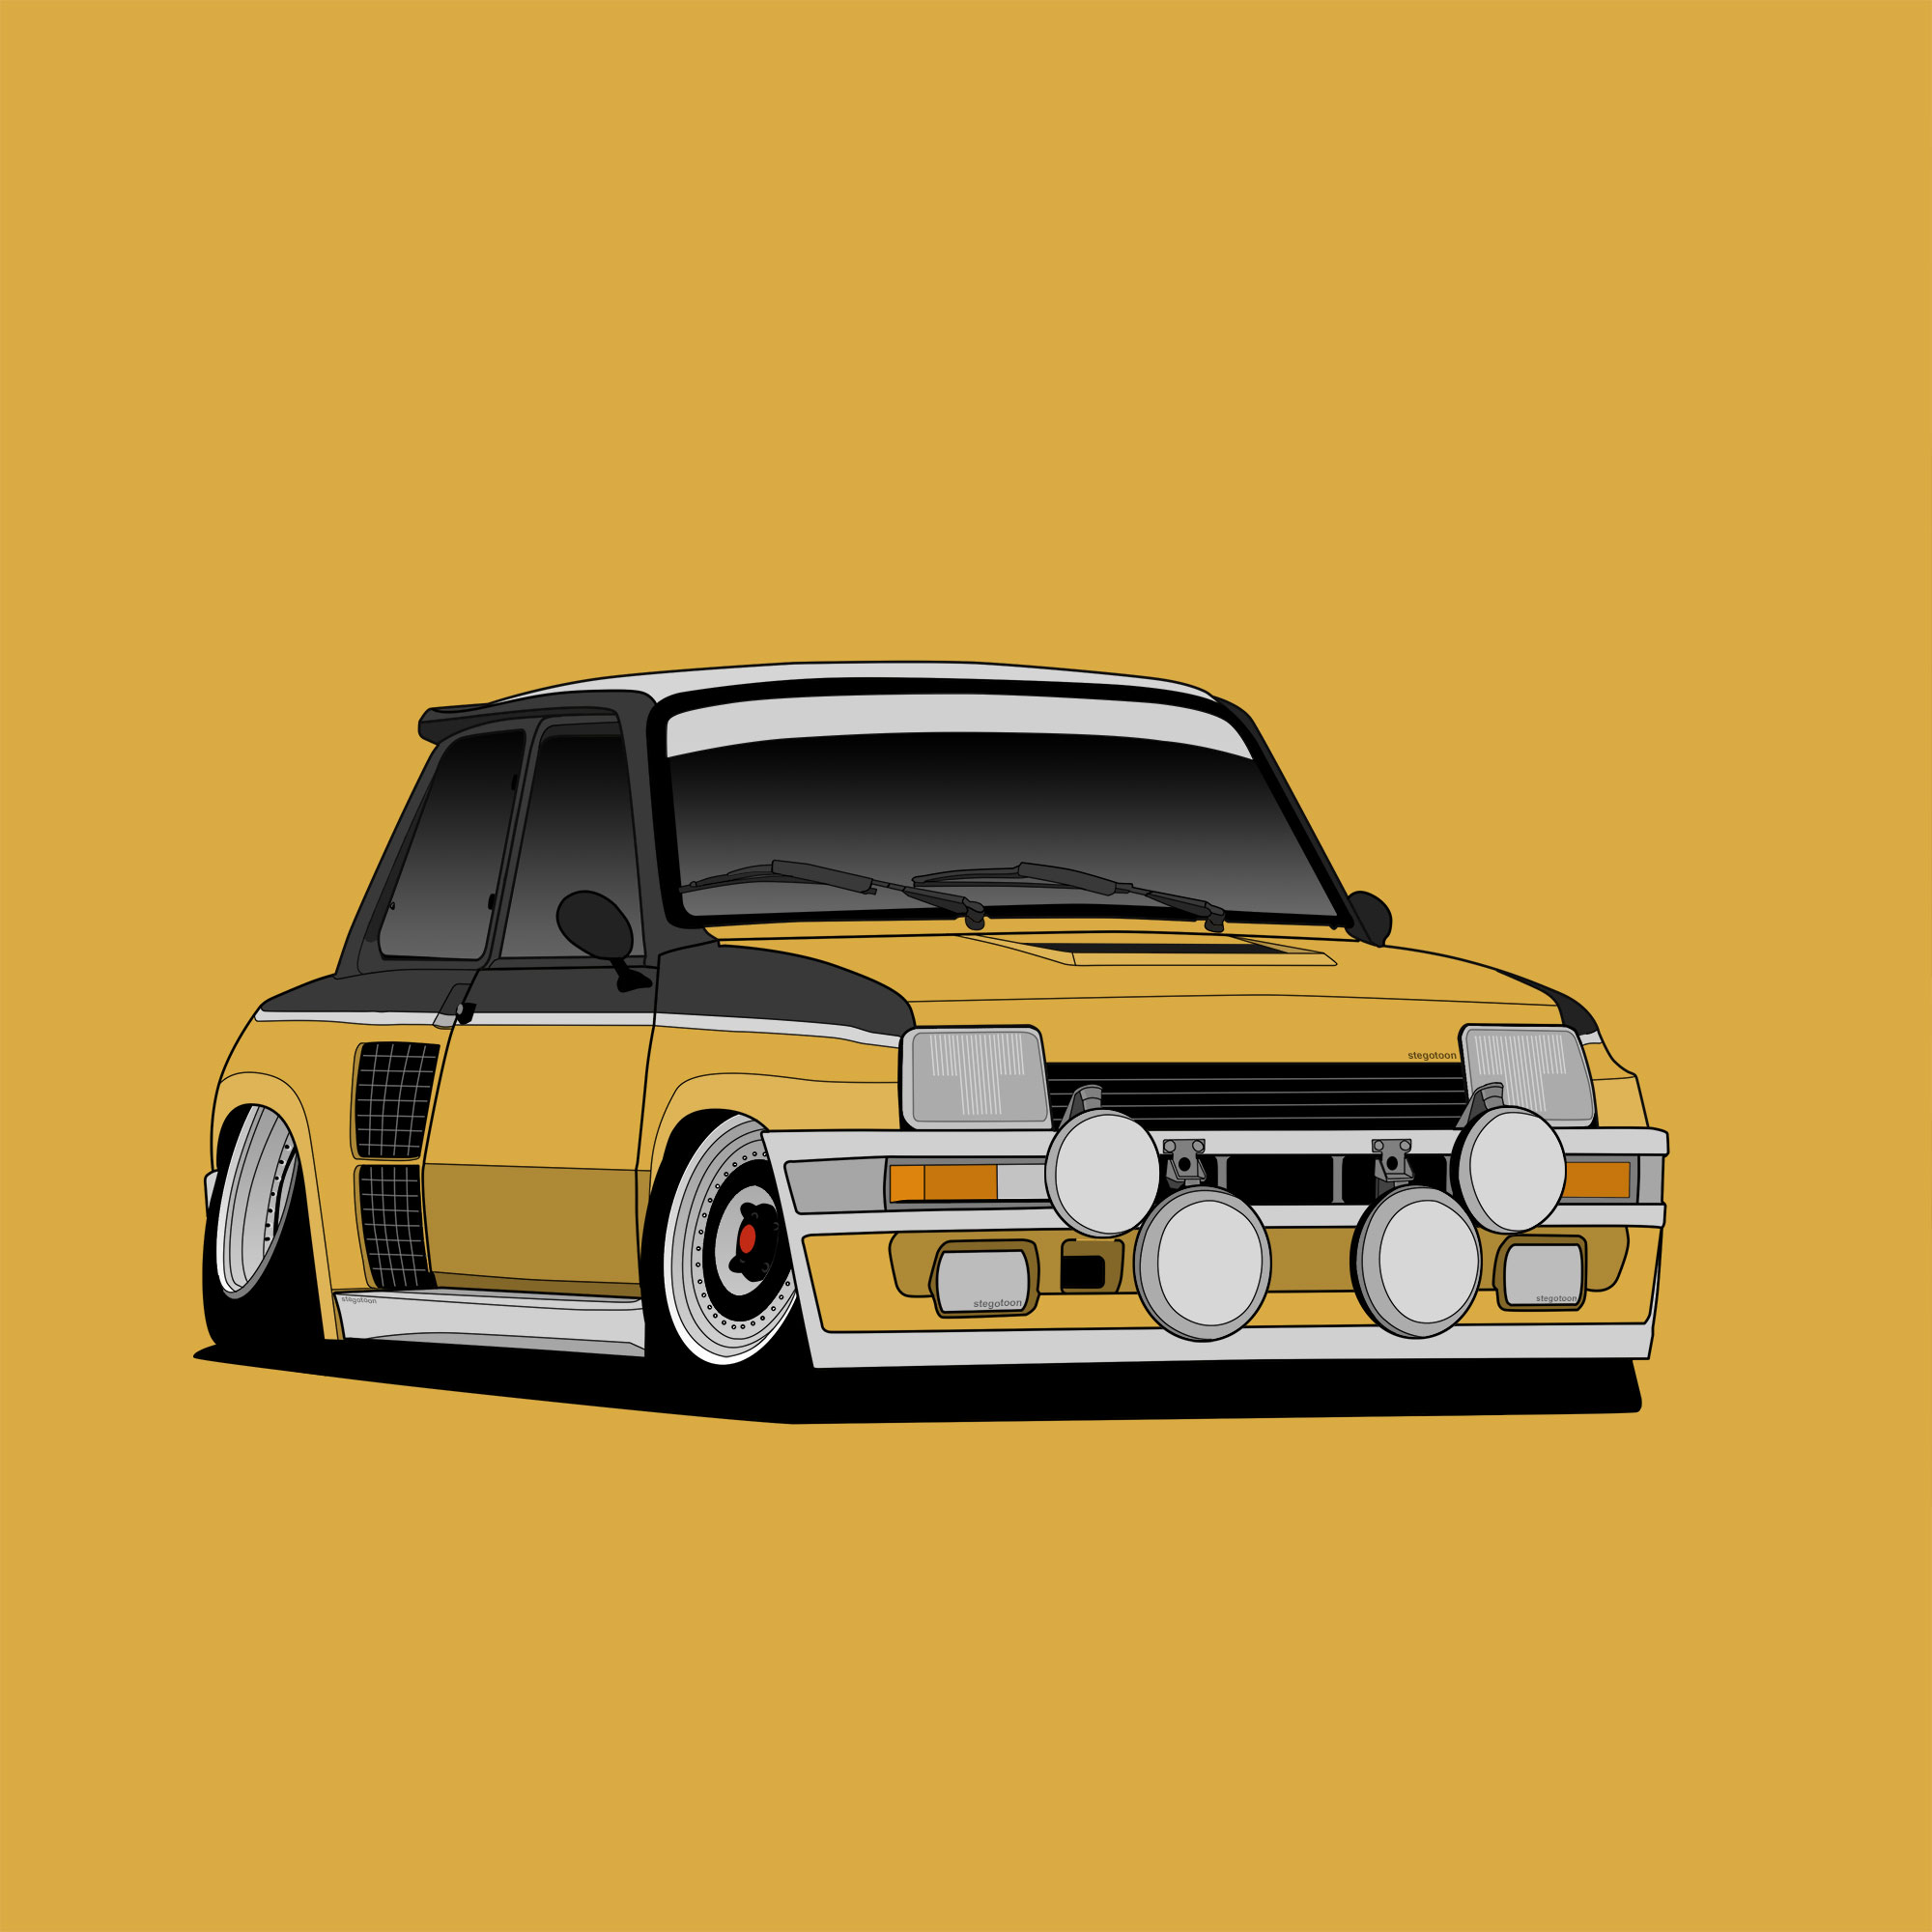 Renault 5 Turbo - CARtoon - stegotoon